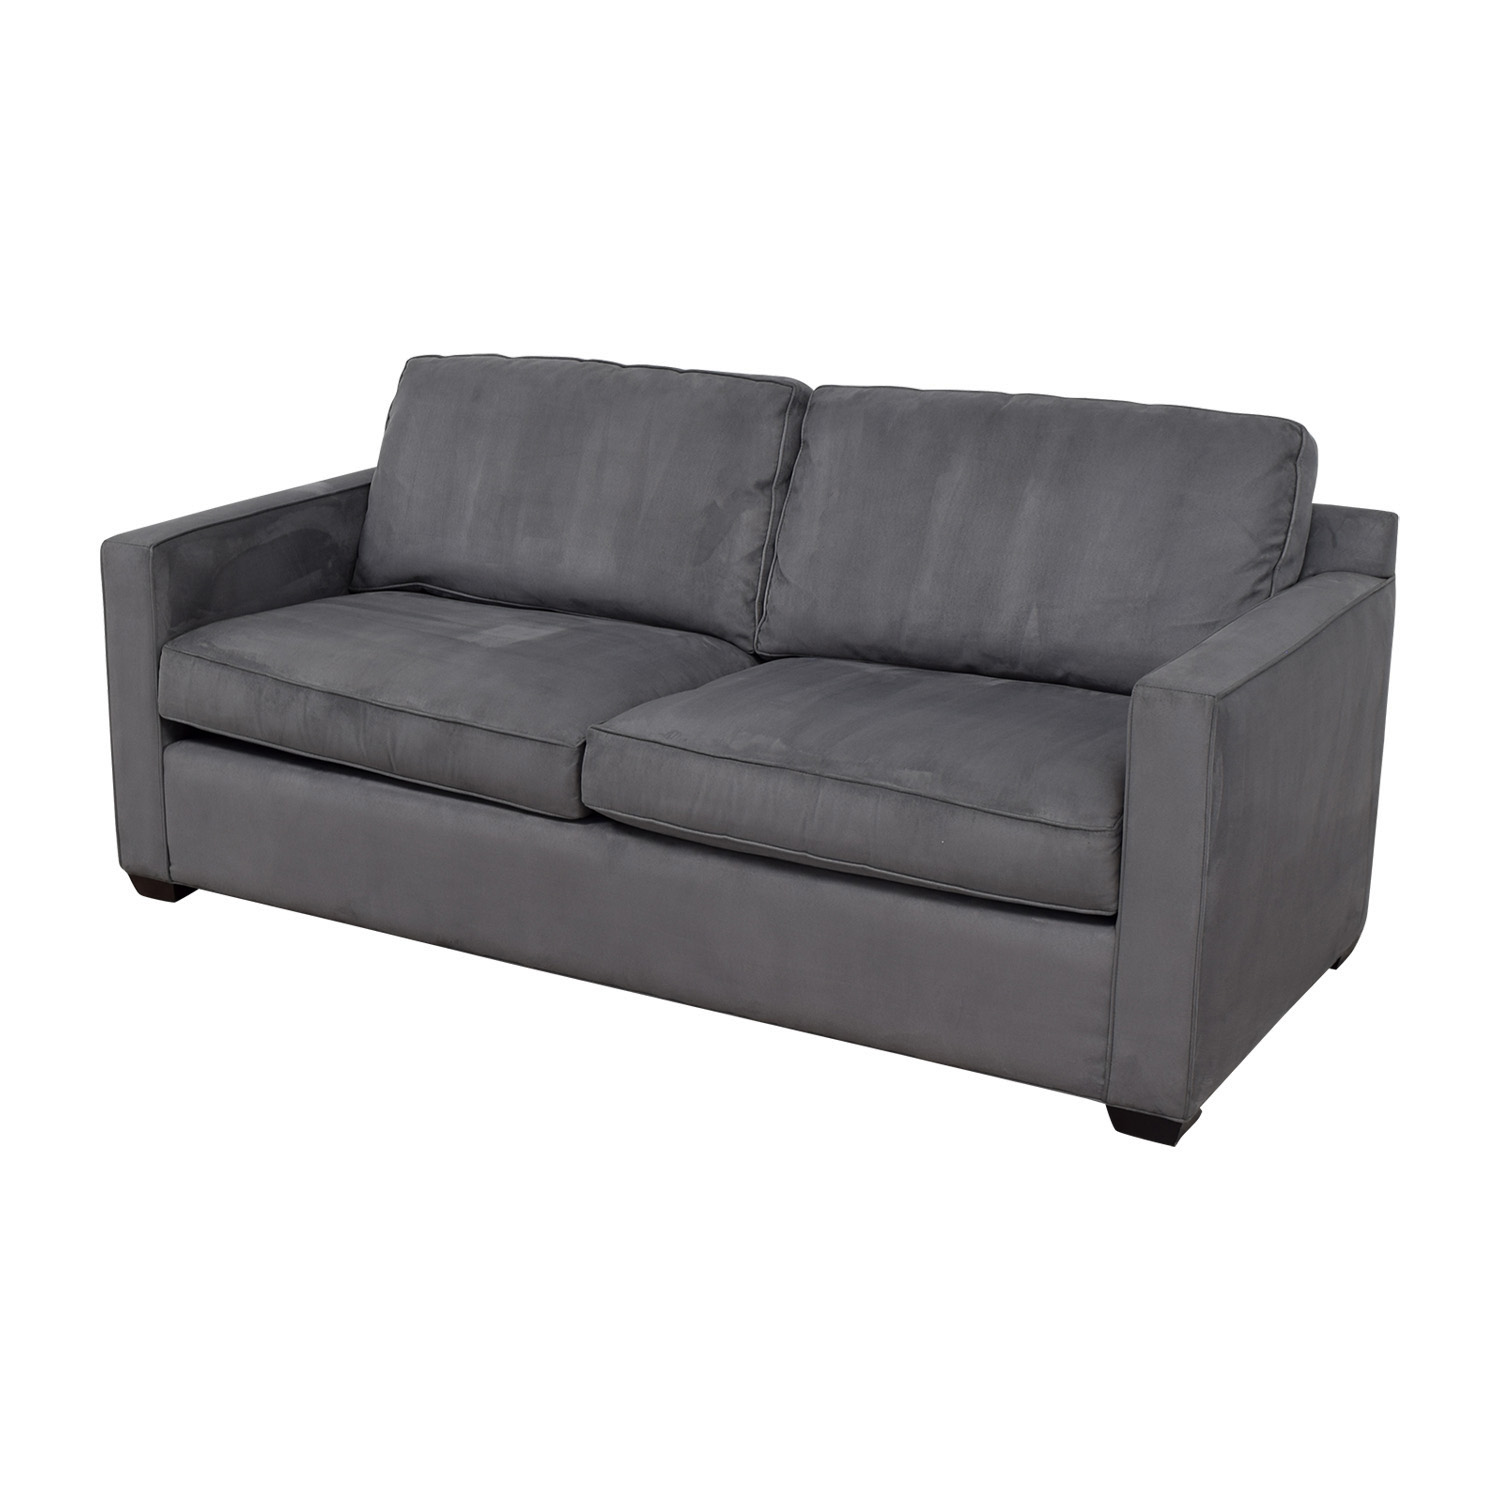 34% OFF Crate & Barrel Crate & Barrel Davis Grey Sofa Sofas